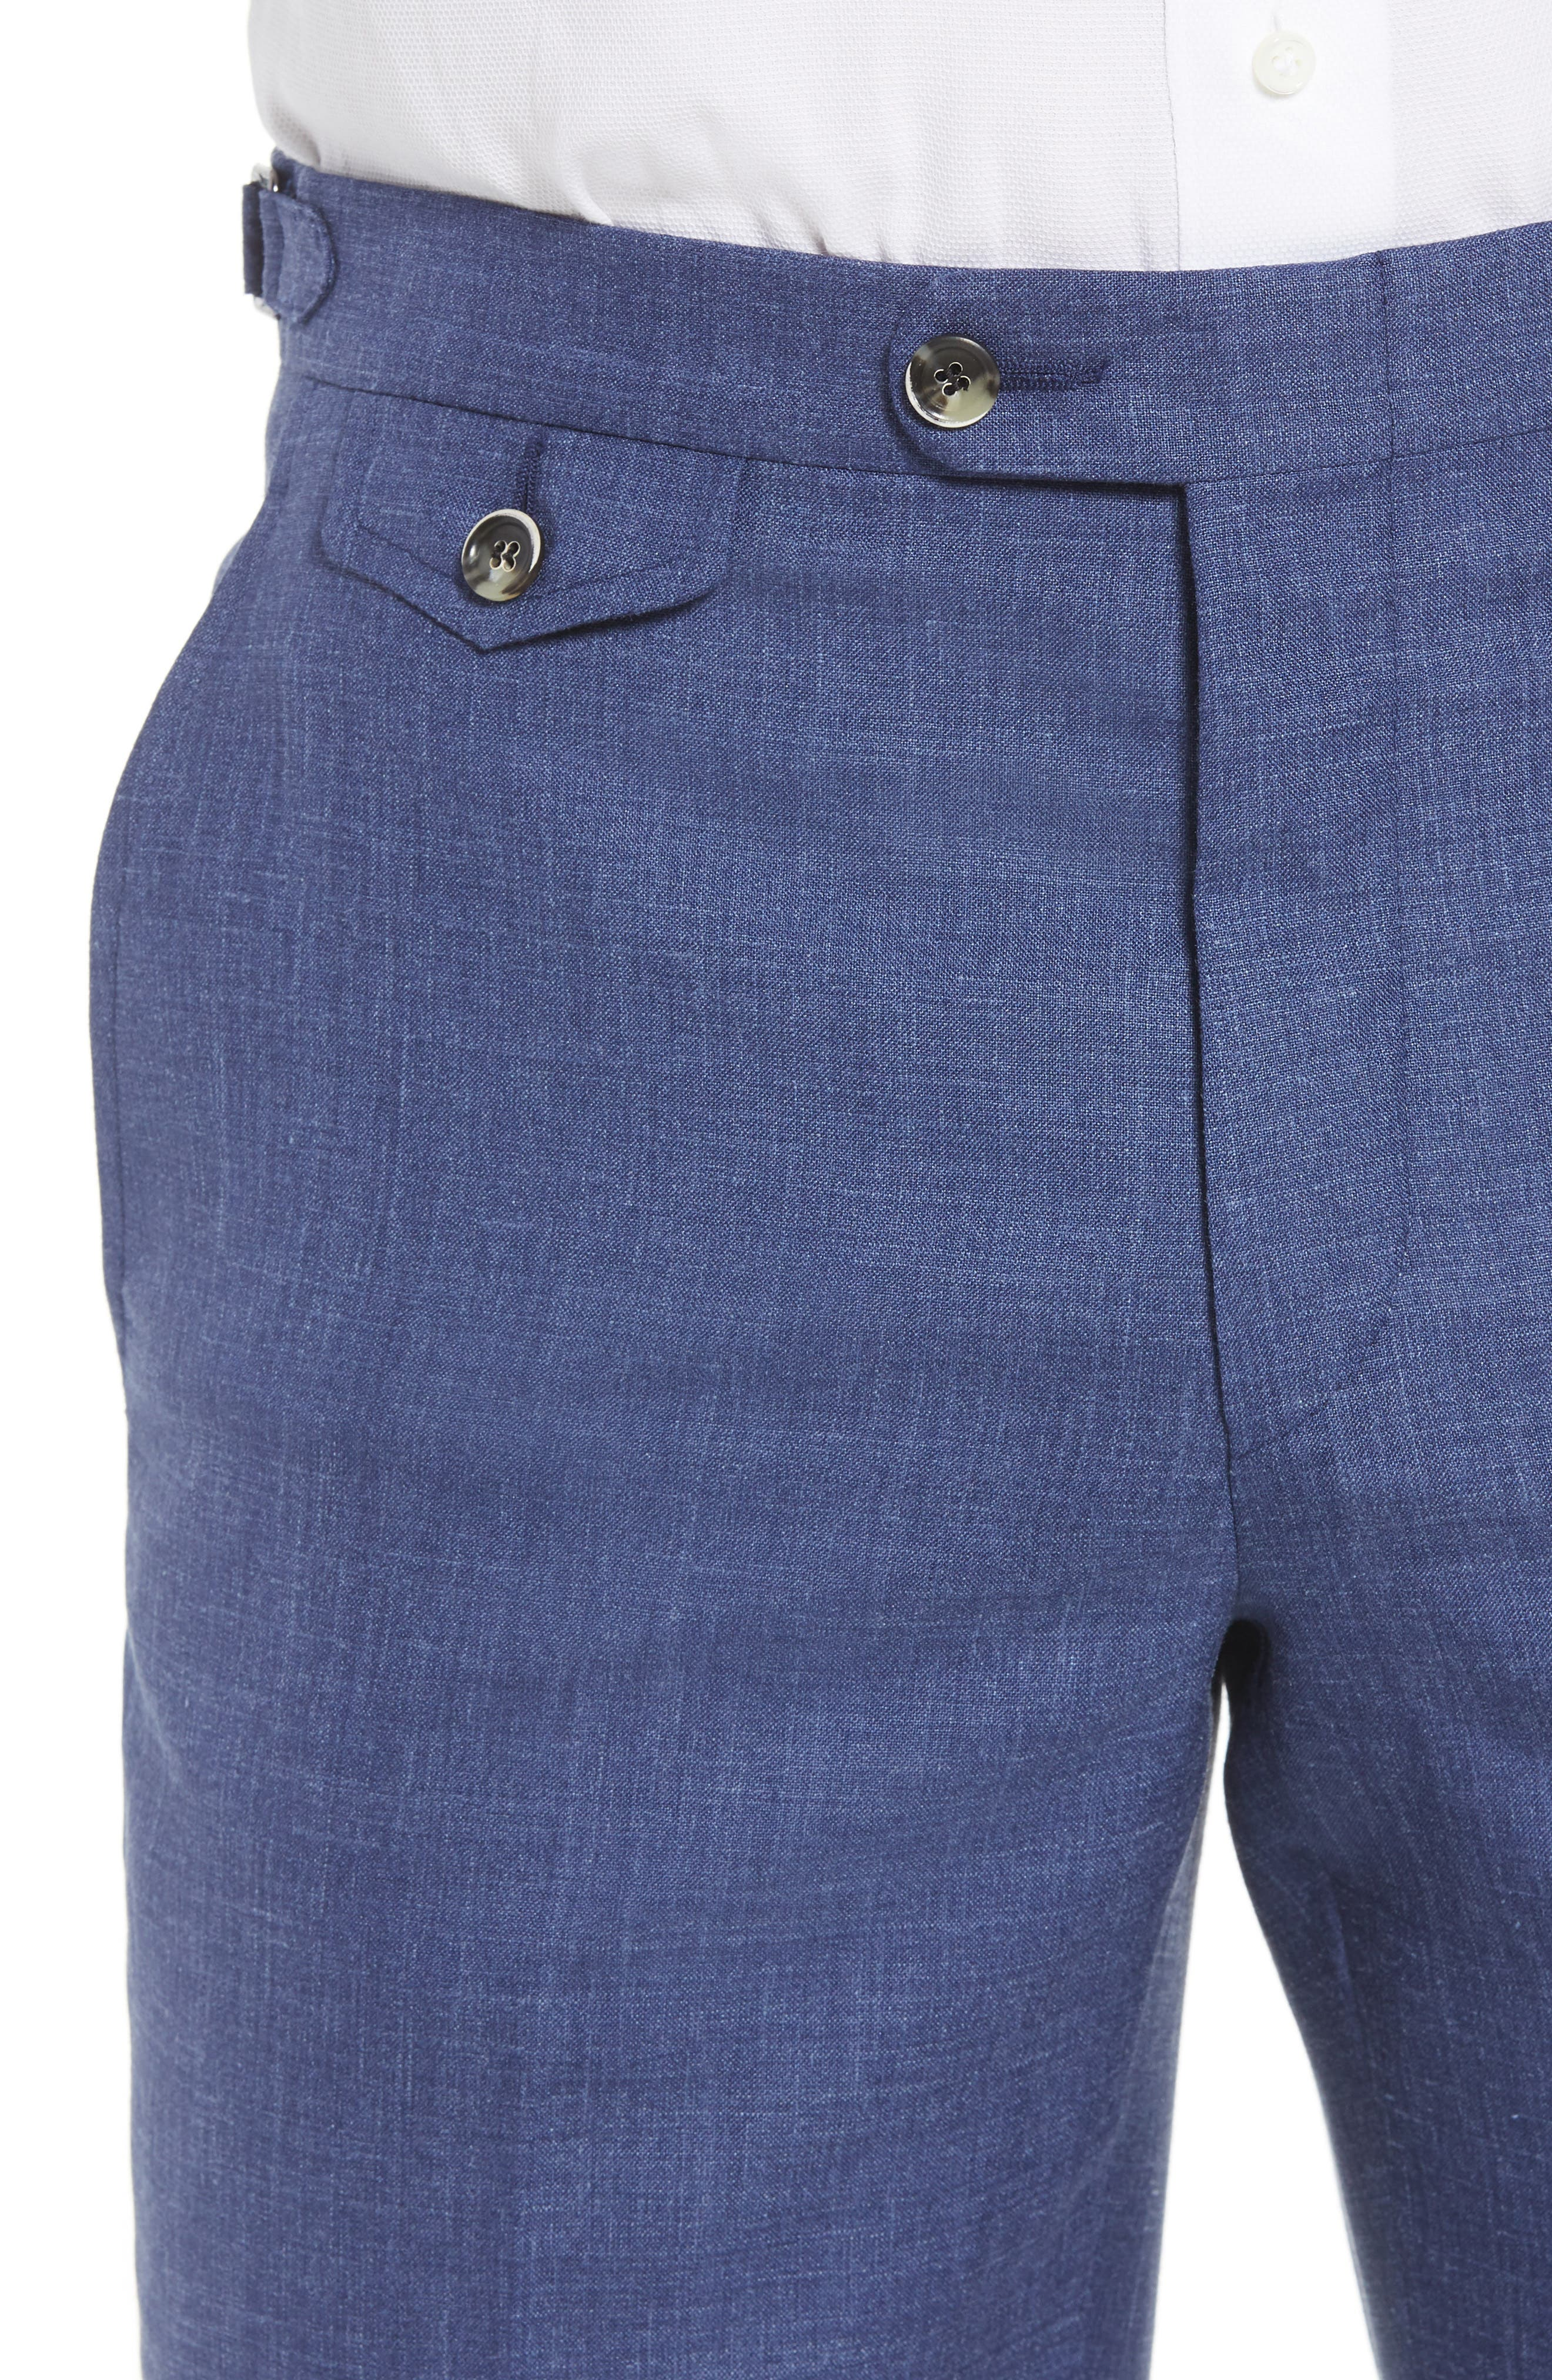 B Fit Flat Front Solid Wool Blend Trousers,                             Alternate thumbnail 4, color,                             BLUE SOLID